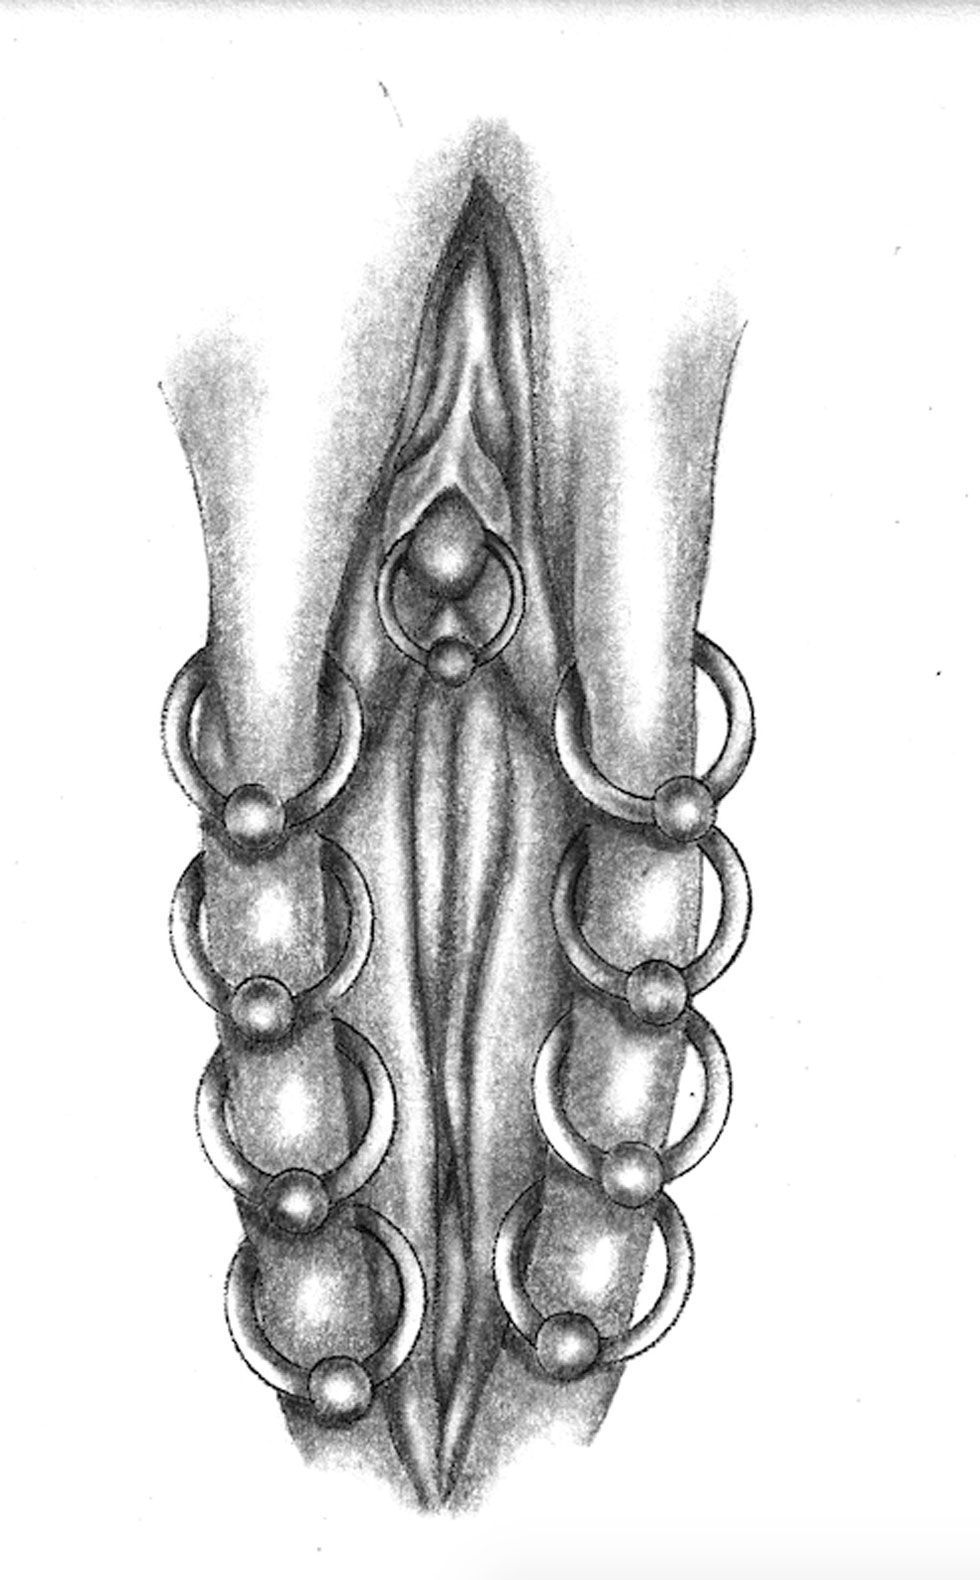 Picture of a clit piercing